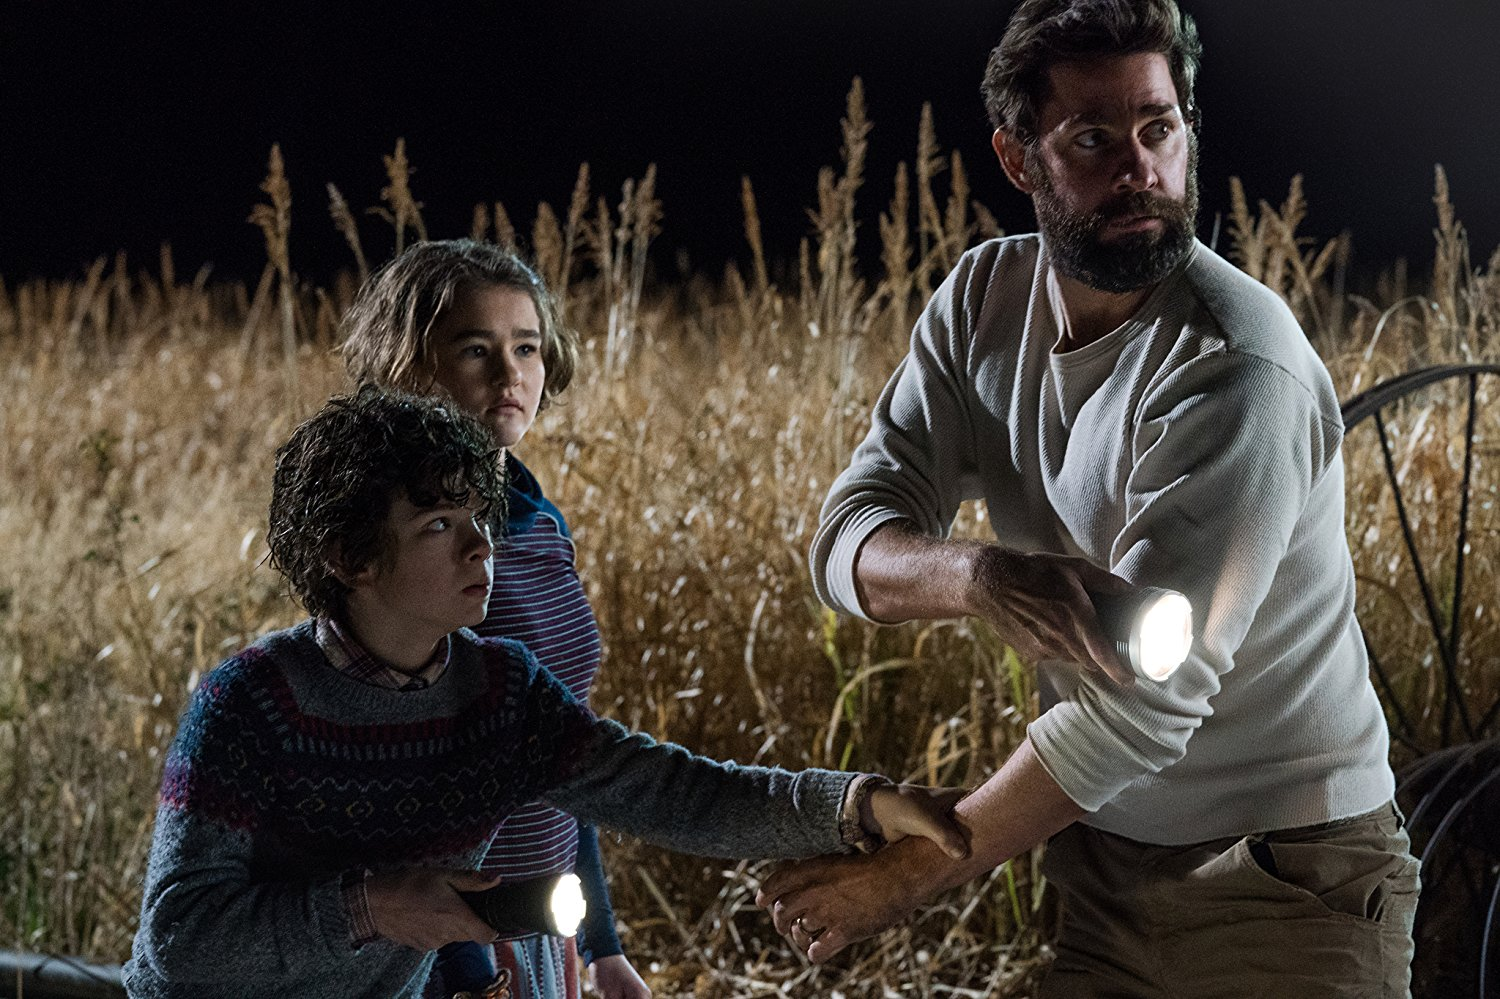 a-quiet-place-john-krasinski-noah-jupe-millicent-simmonds.jpg